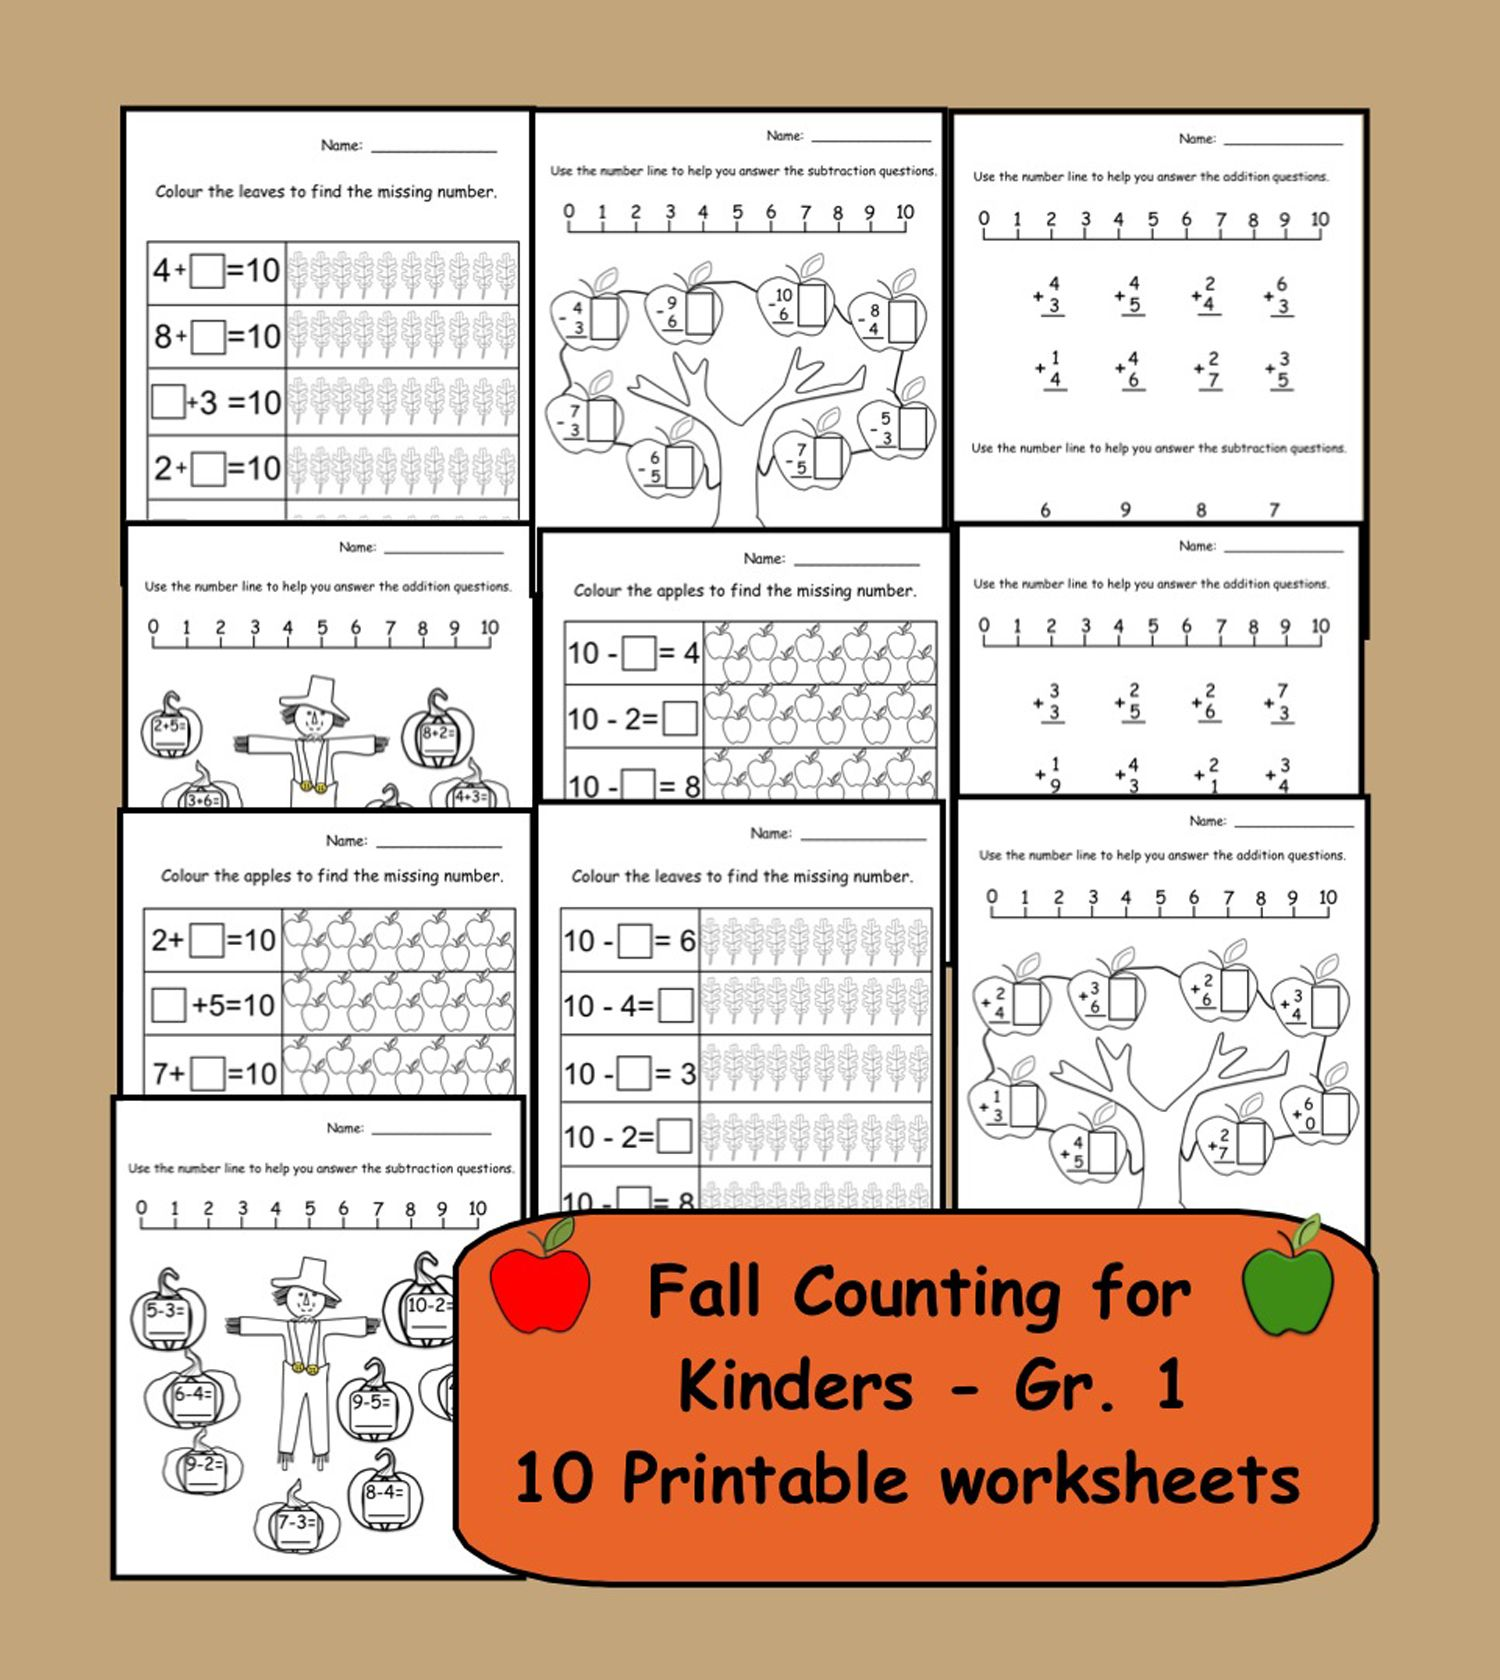 Fall Counting For Kinders